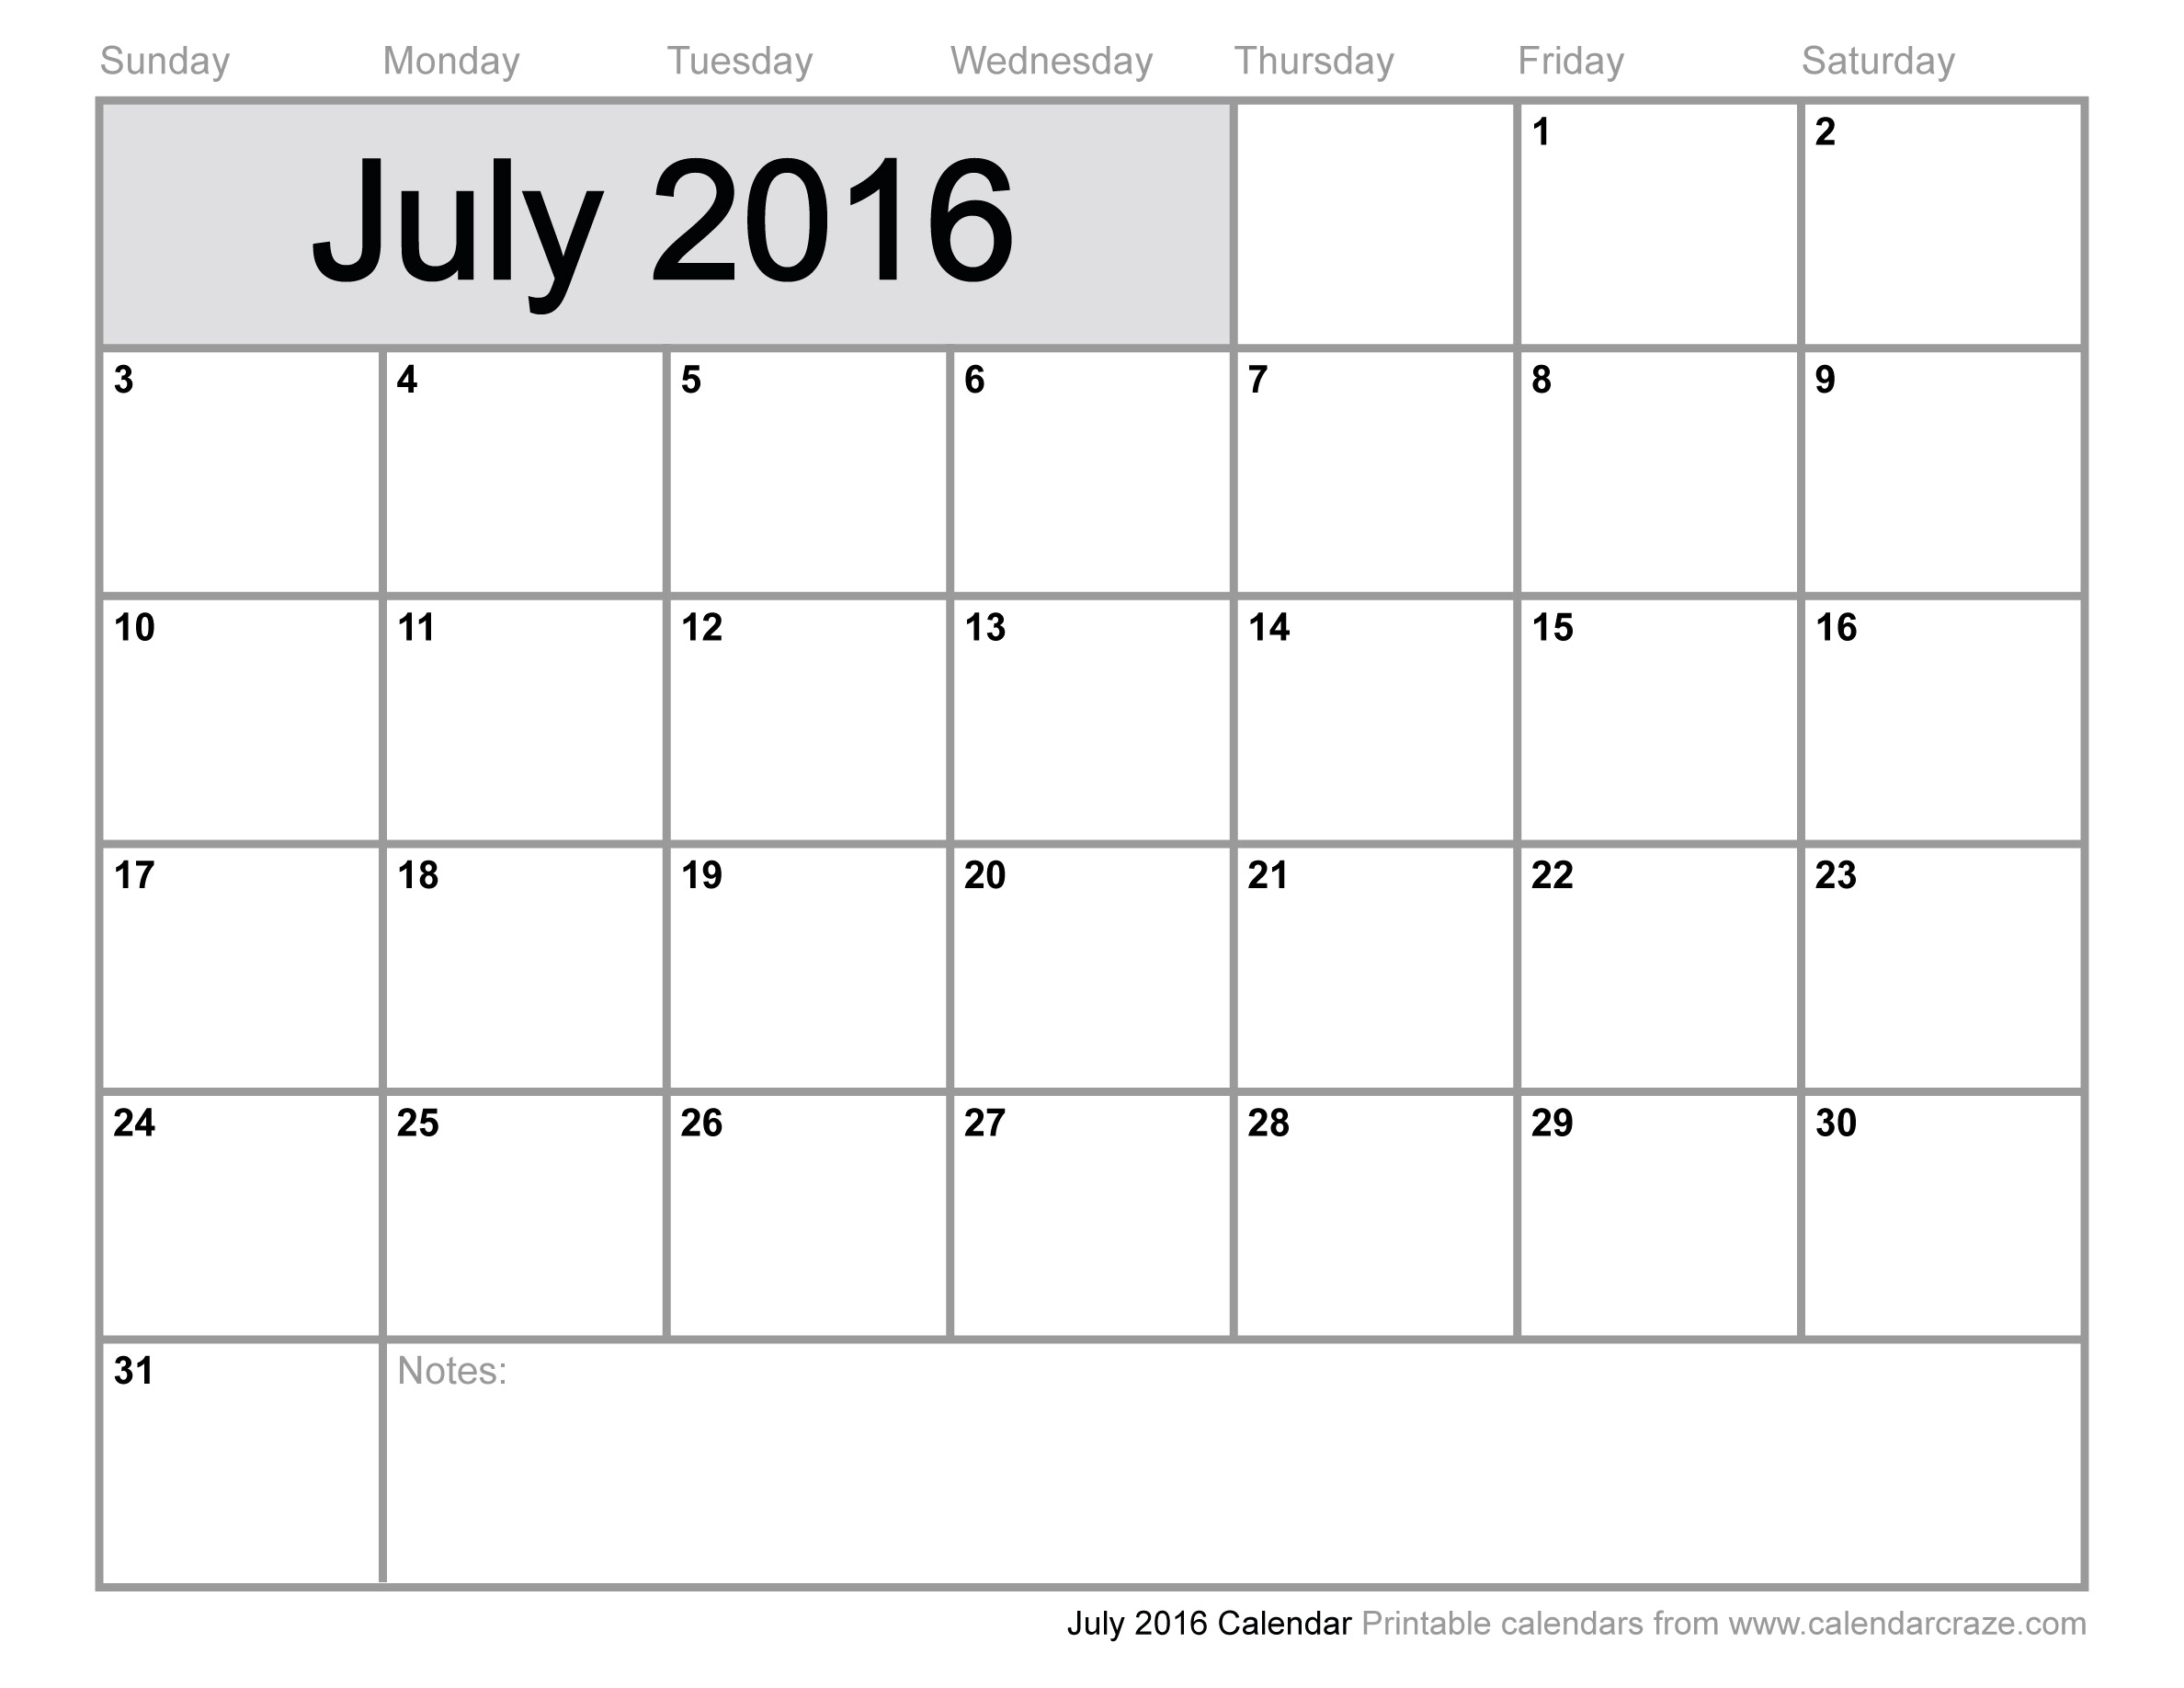 4 Images of July 2016 Calendar Printable